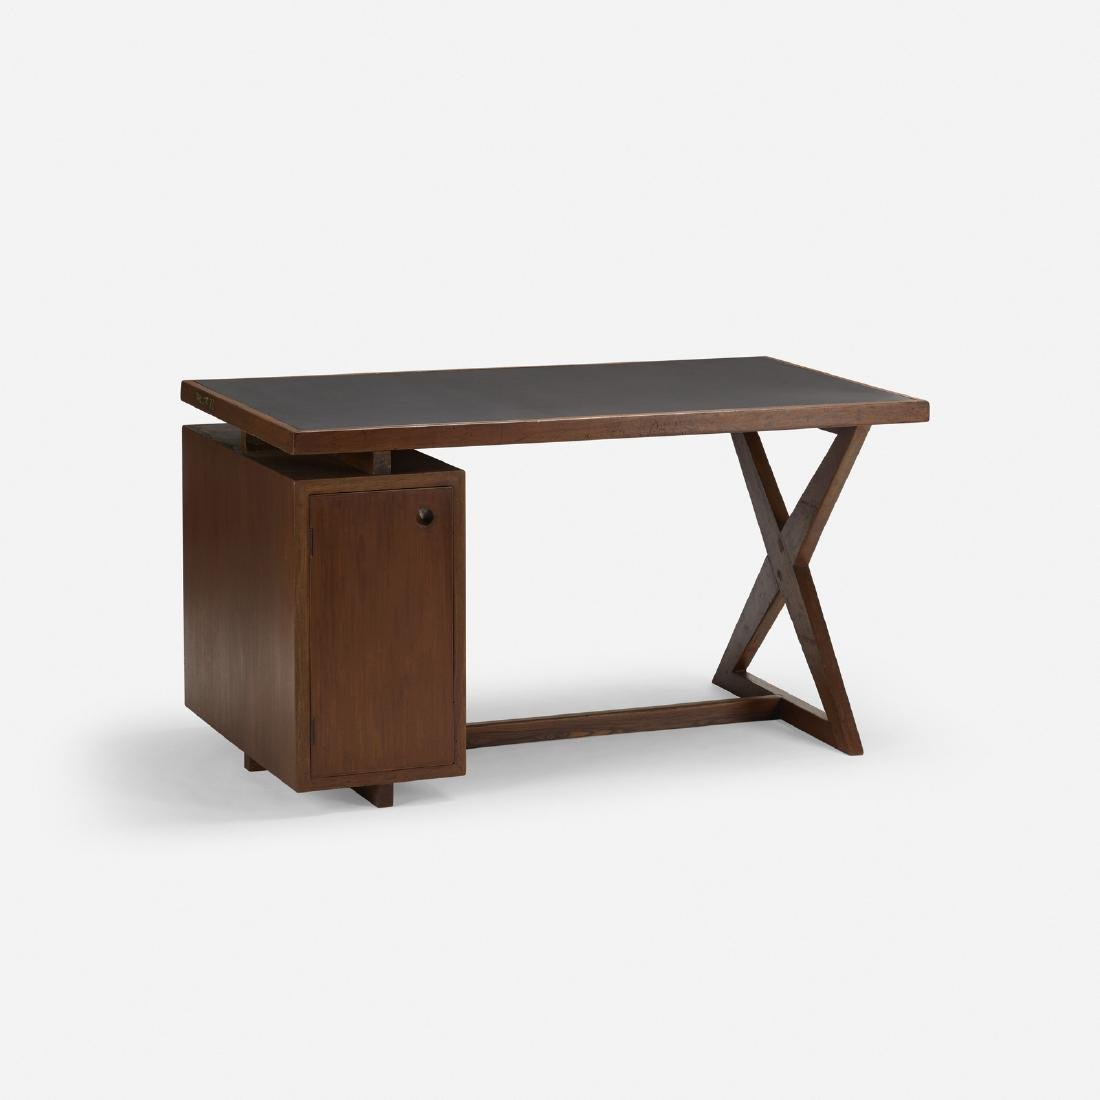 Pierre Jeanneret, desk and chair from Chandigarh - 3